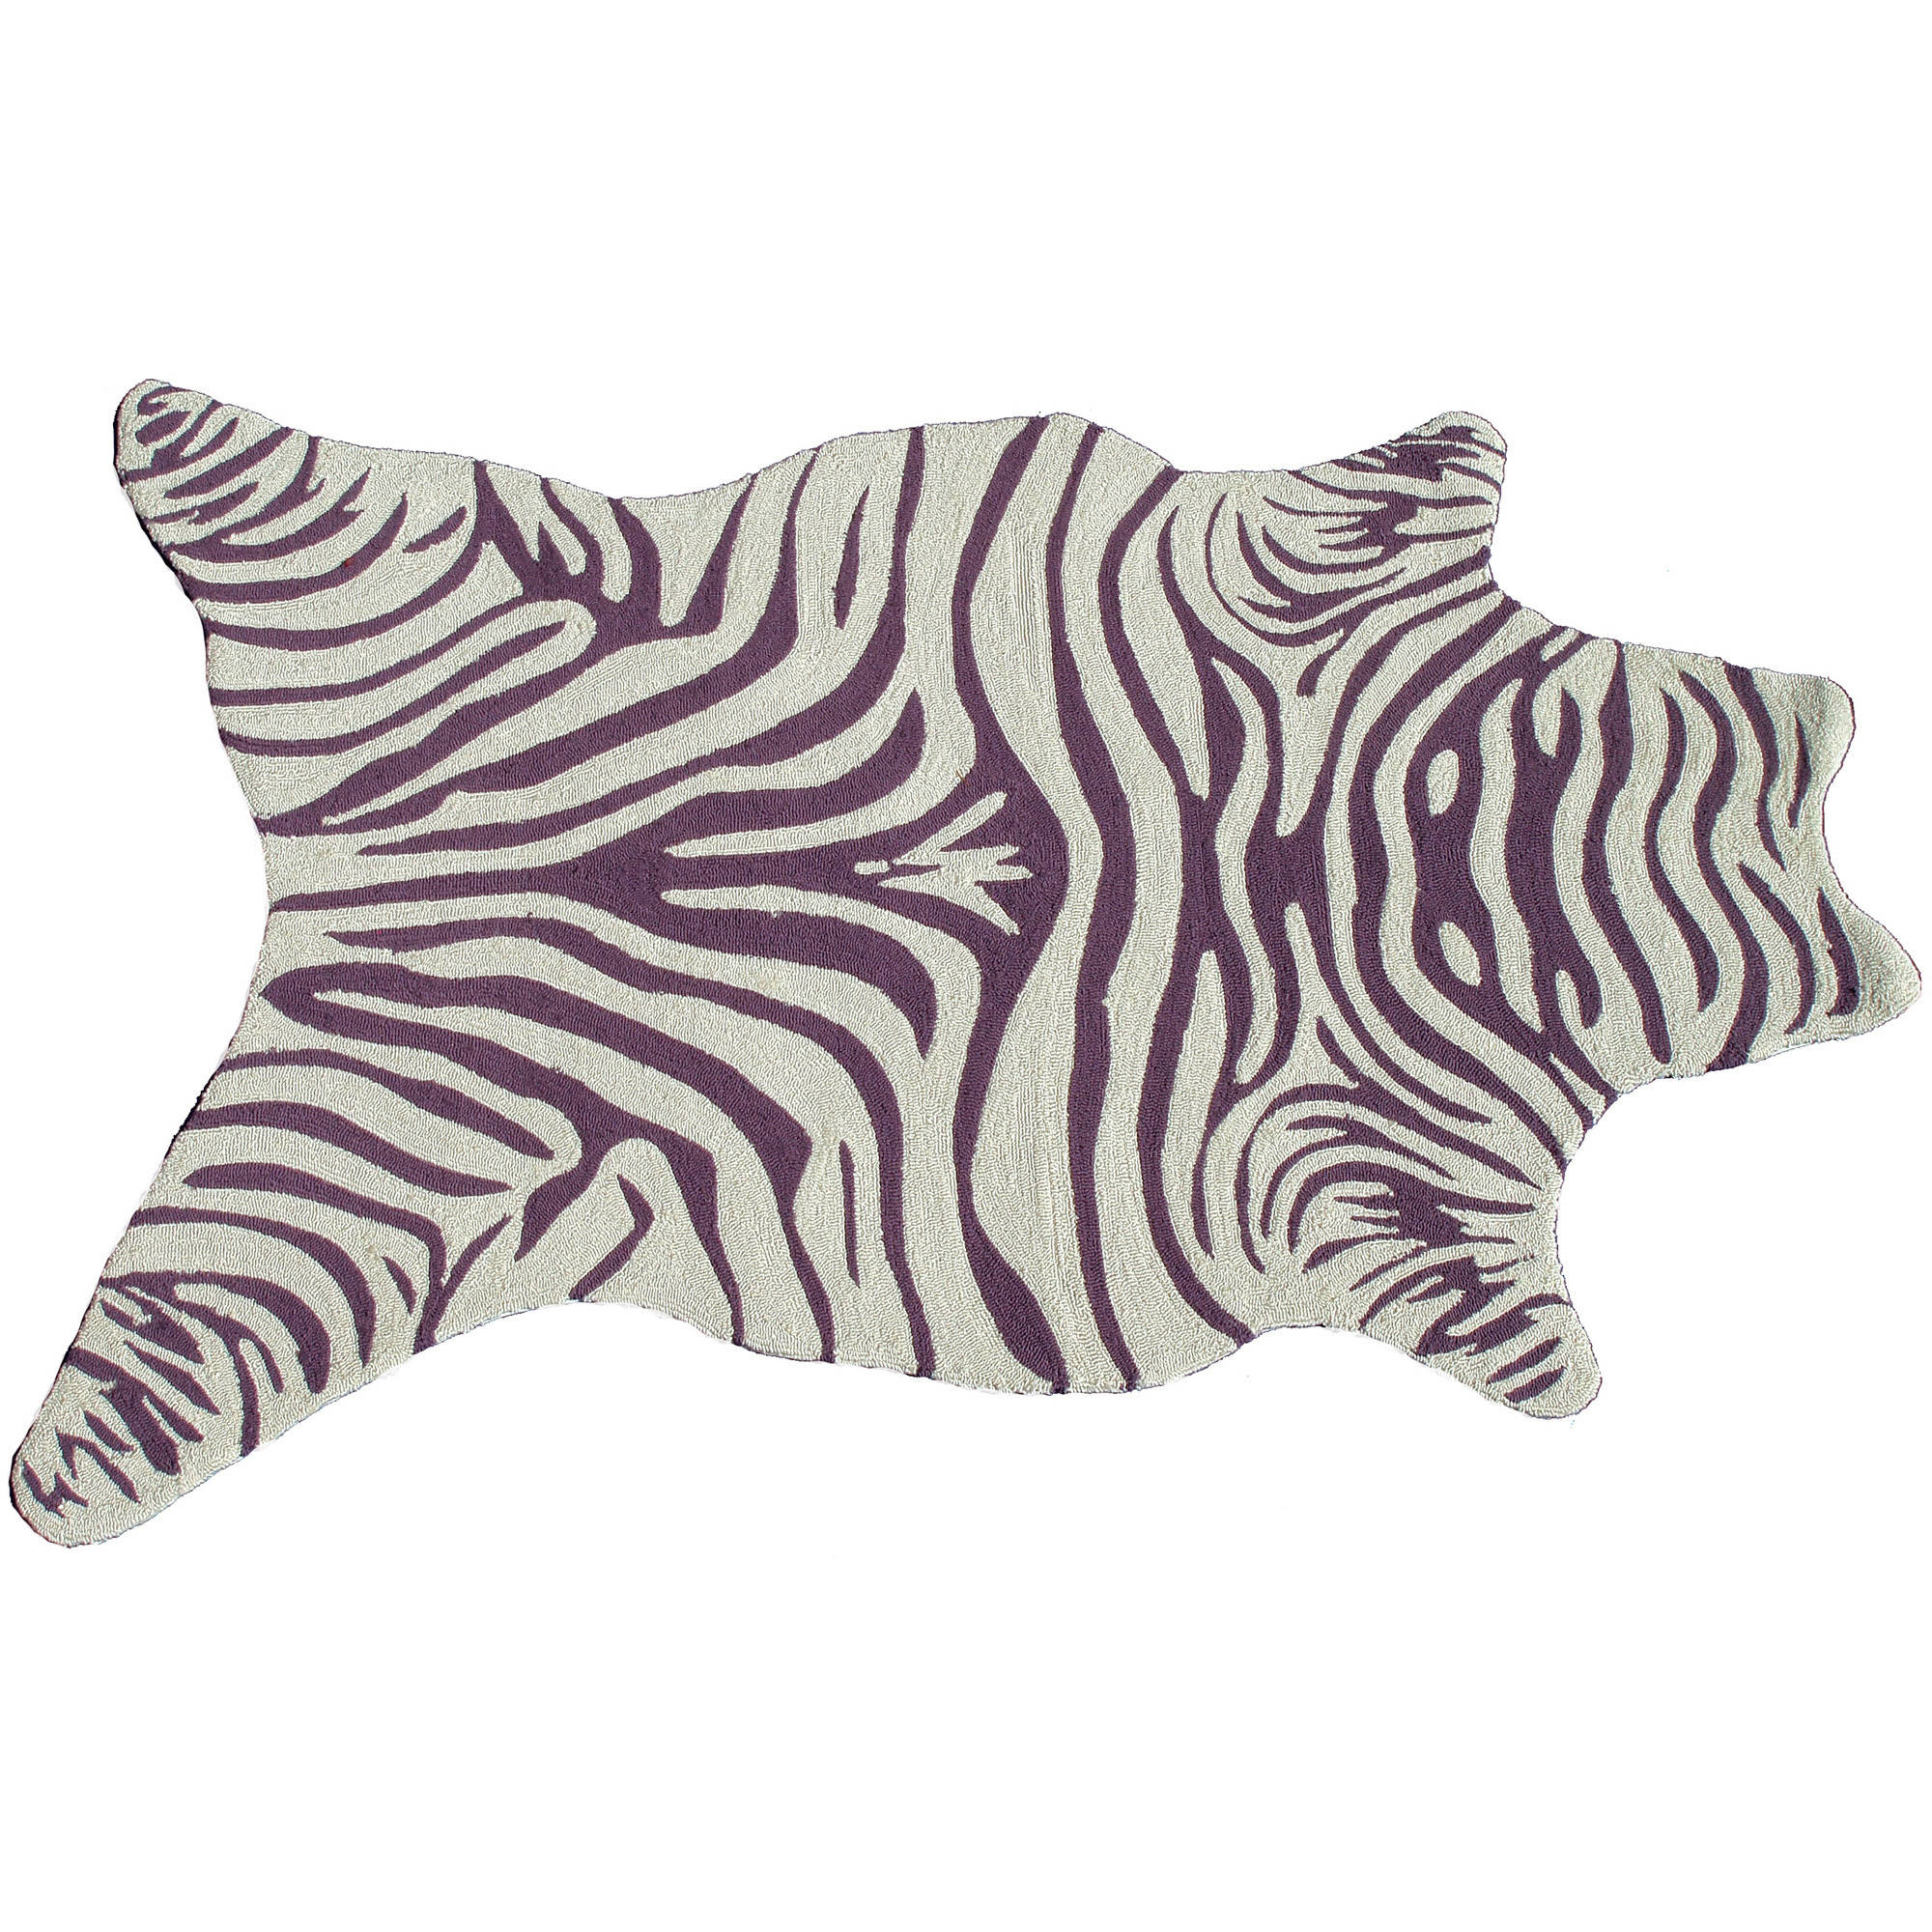 The Rug Market Zebra Vineyard Shaped Rug, 5' x 8'